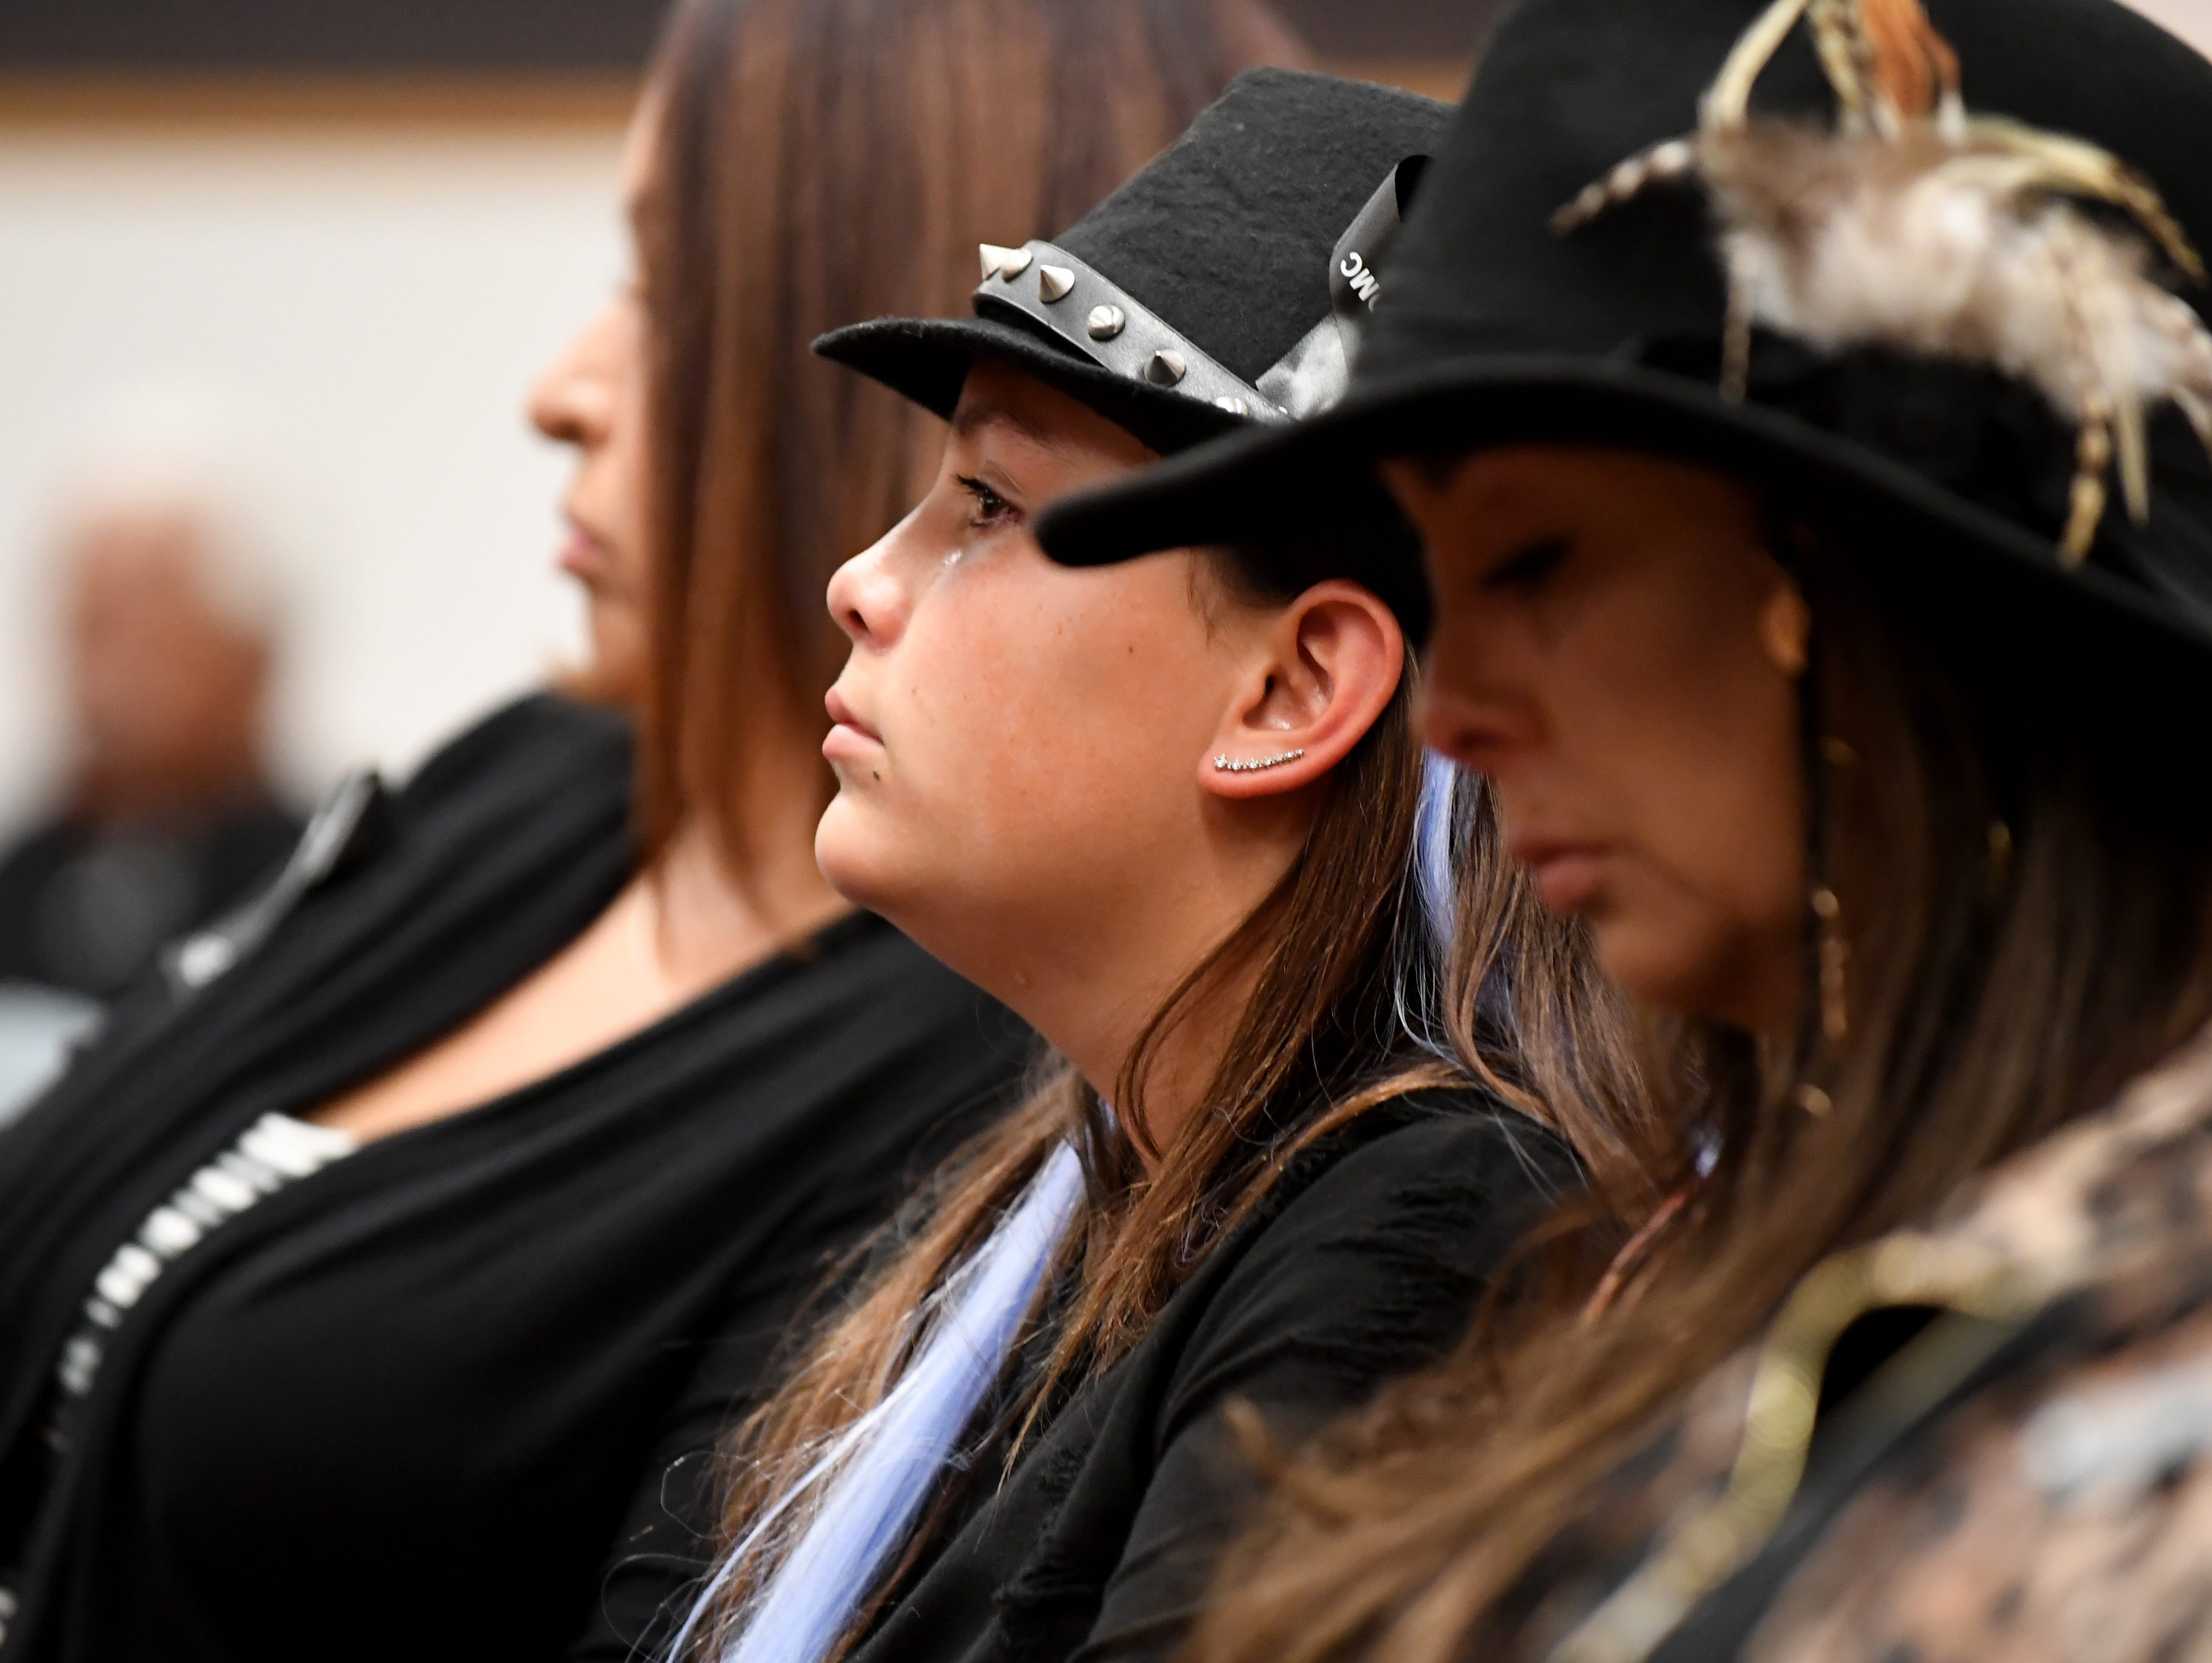 Meiha Vargas (middle) mourns her uncle Sal Vargas who was killed when he was 18.